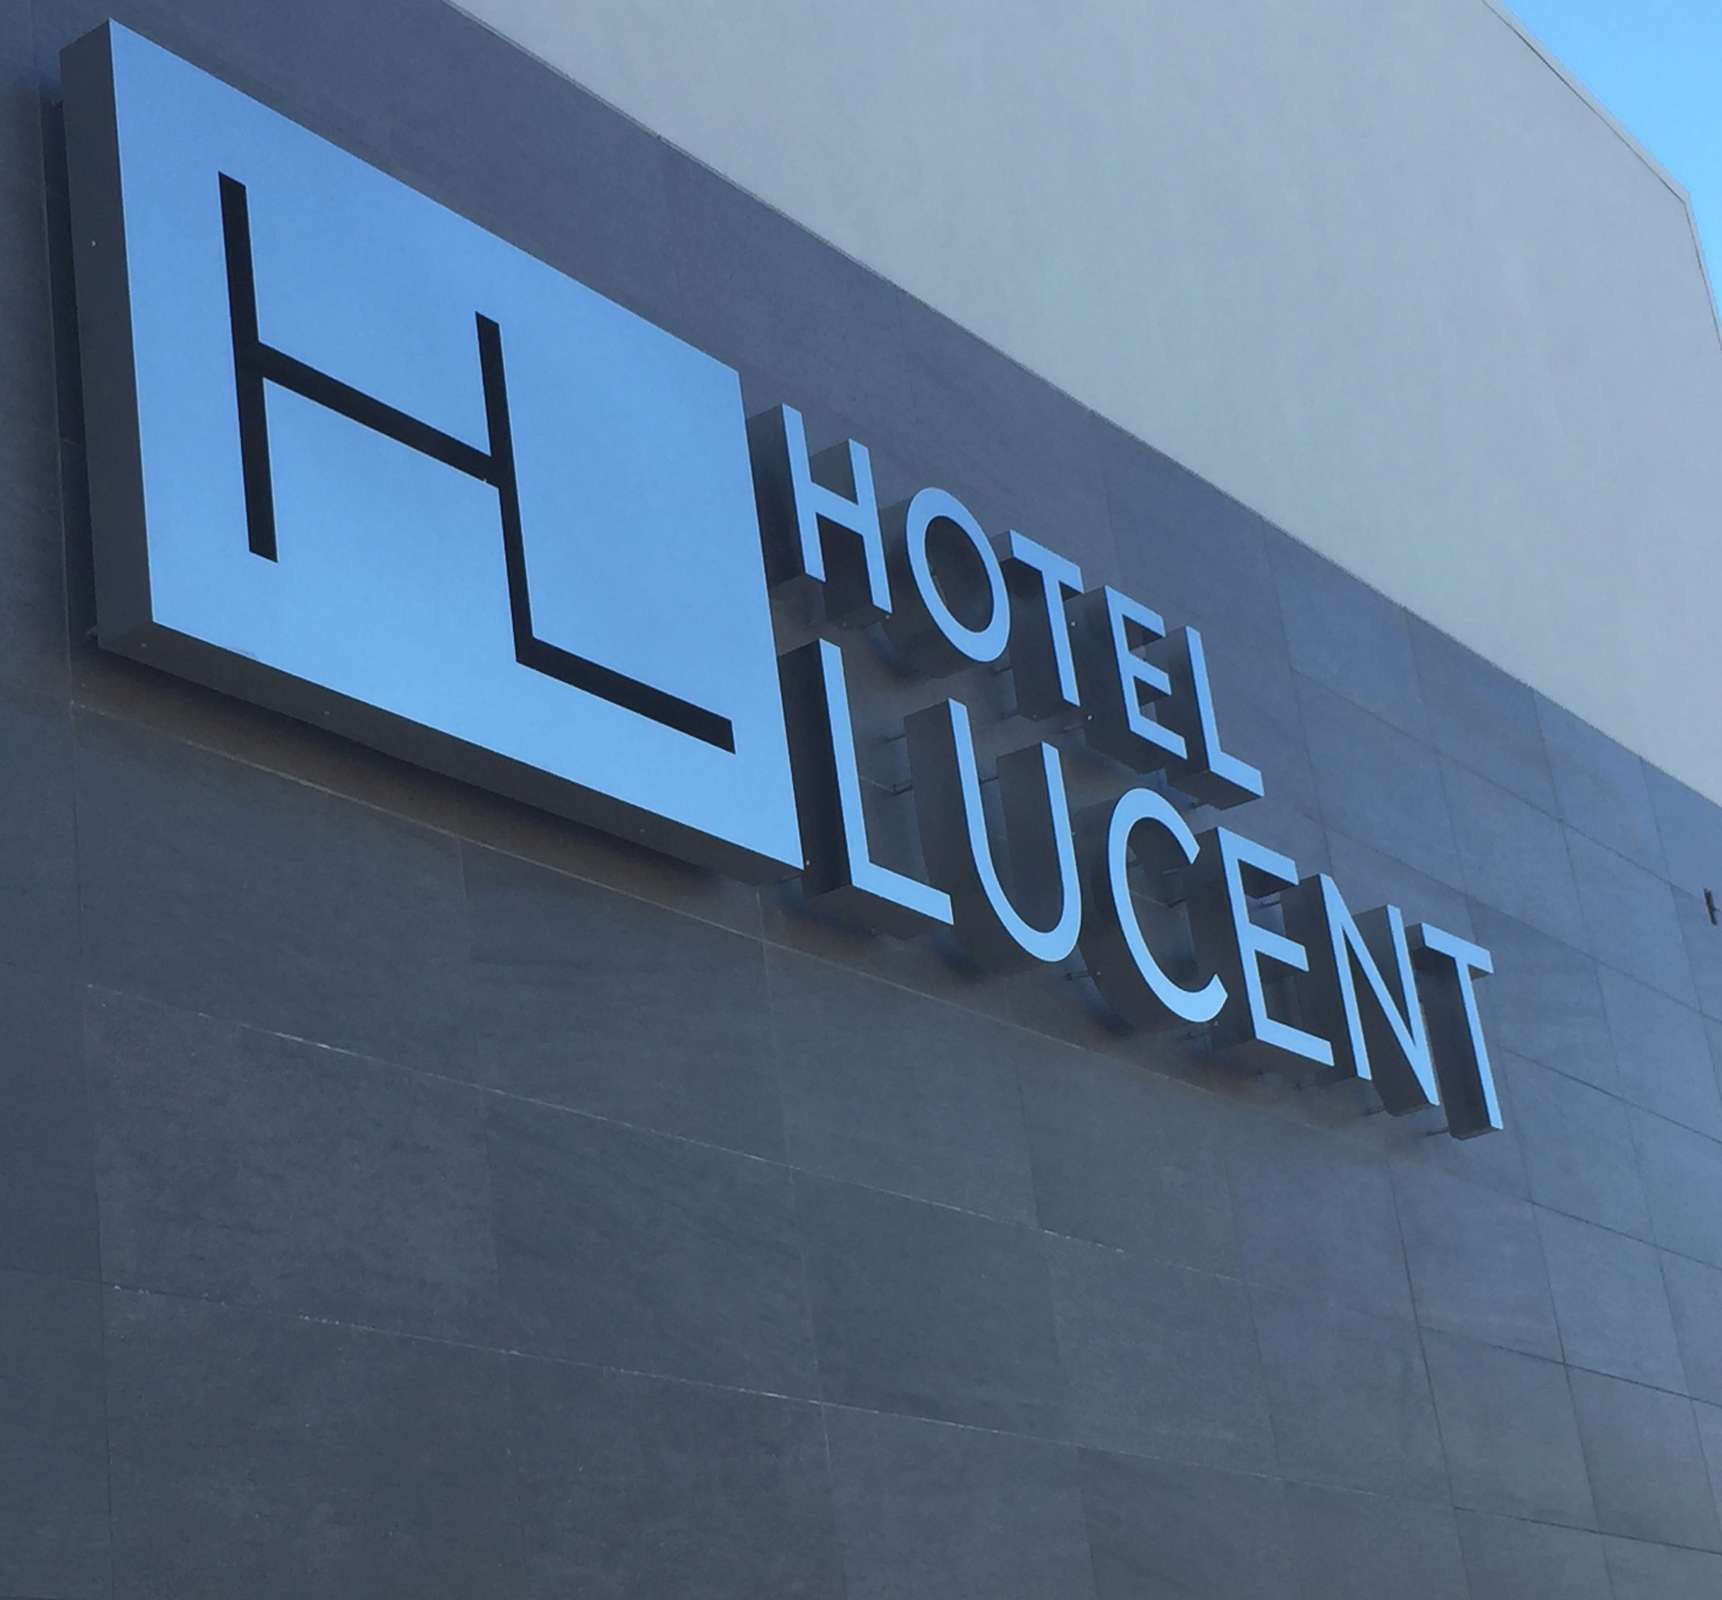 Hotel Lucent